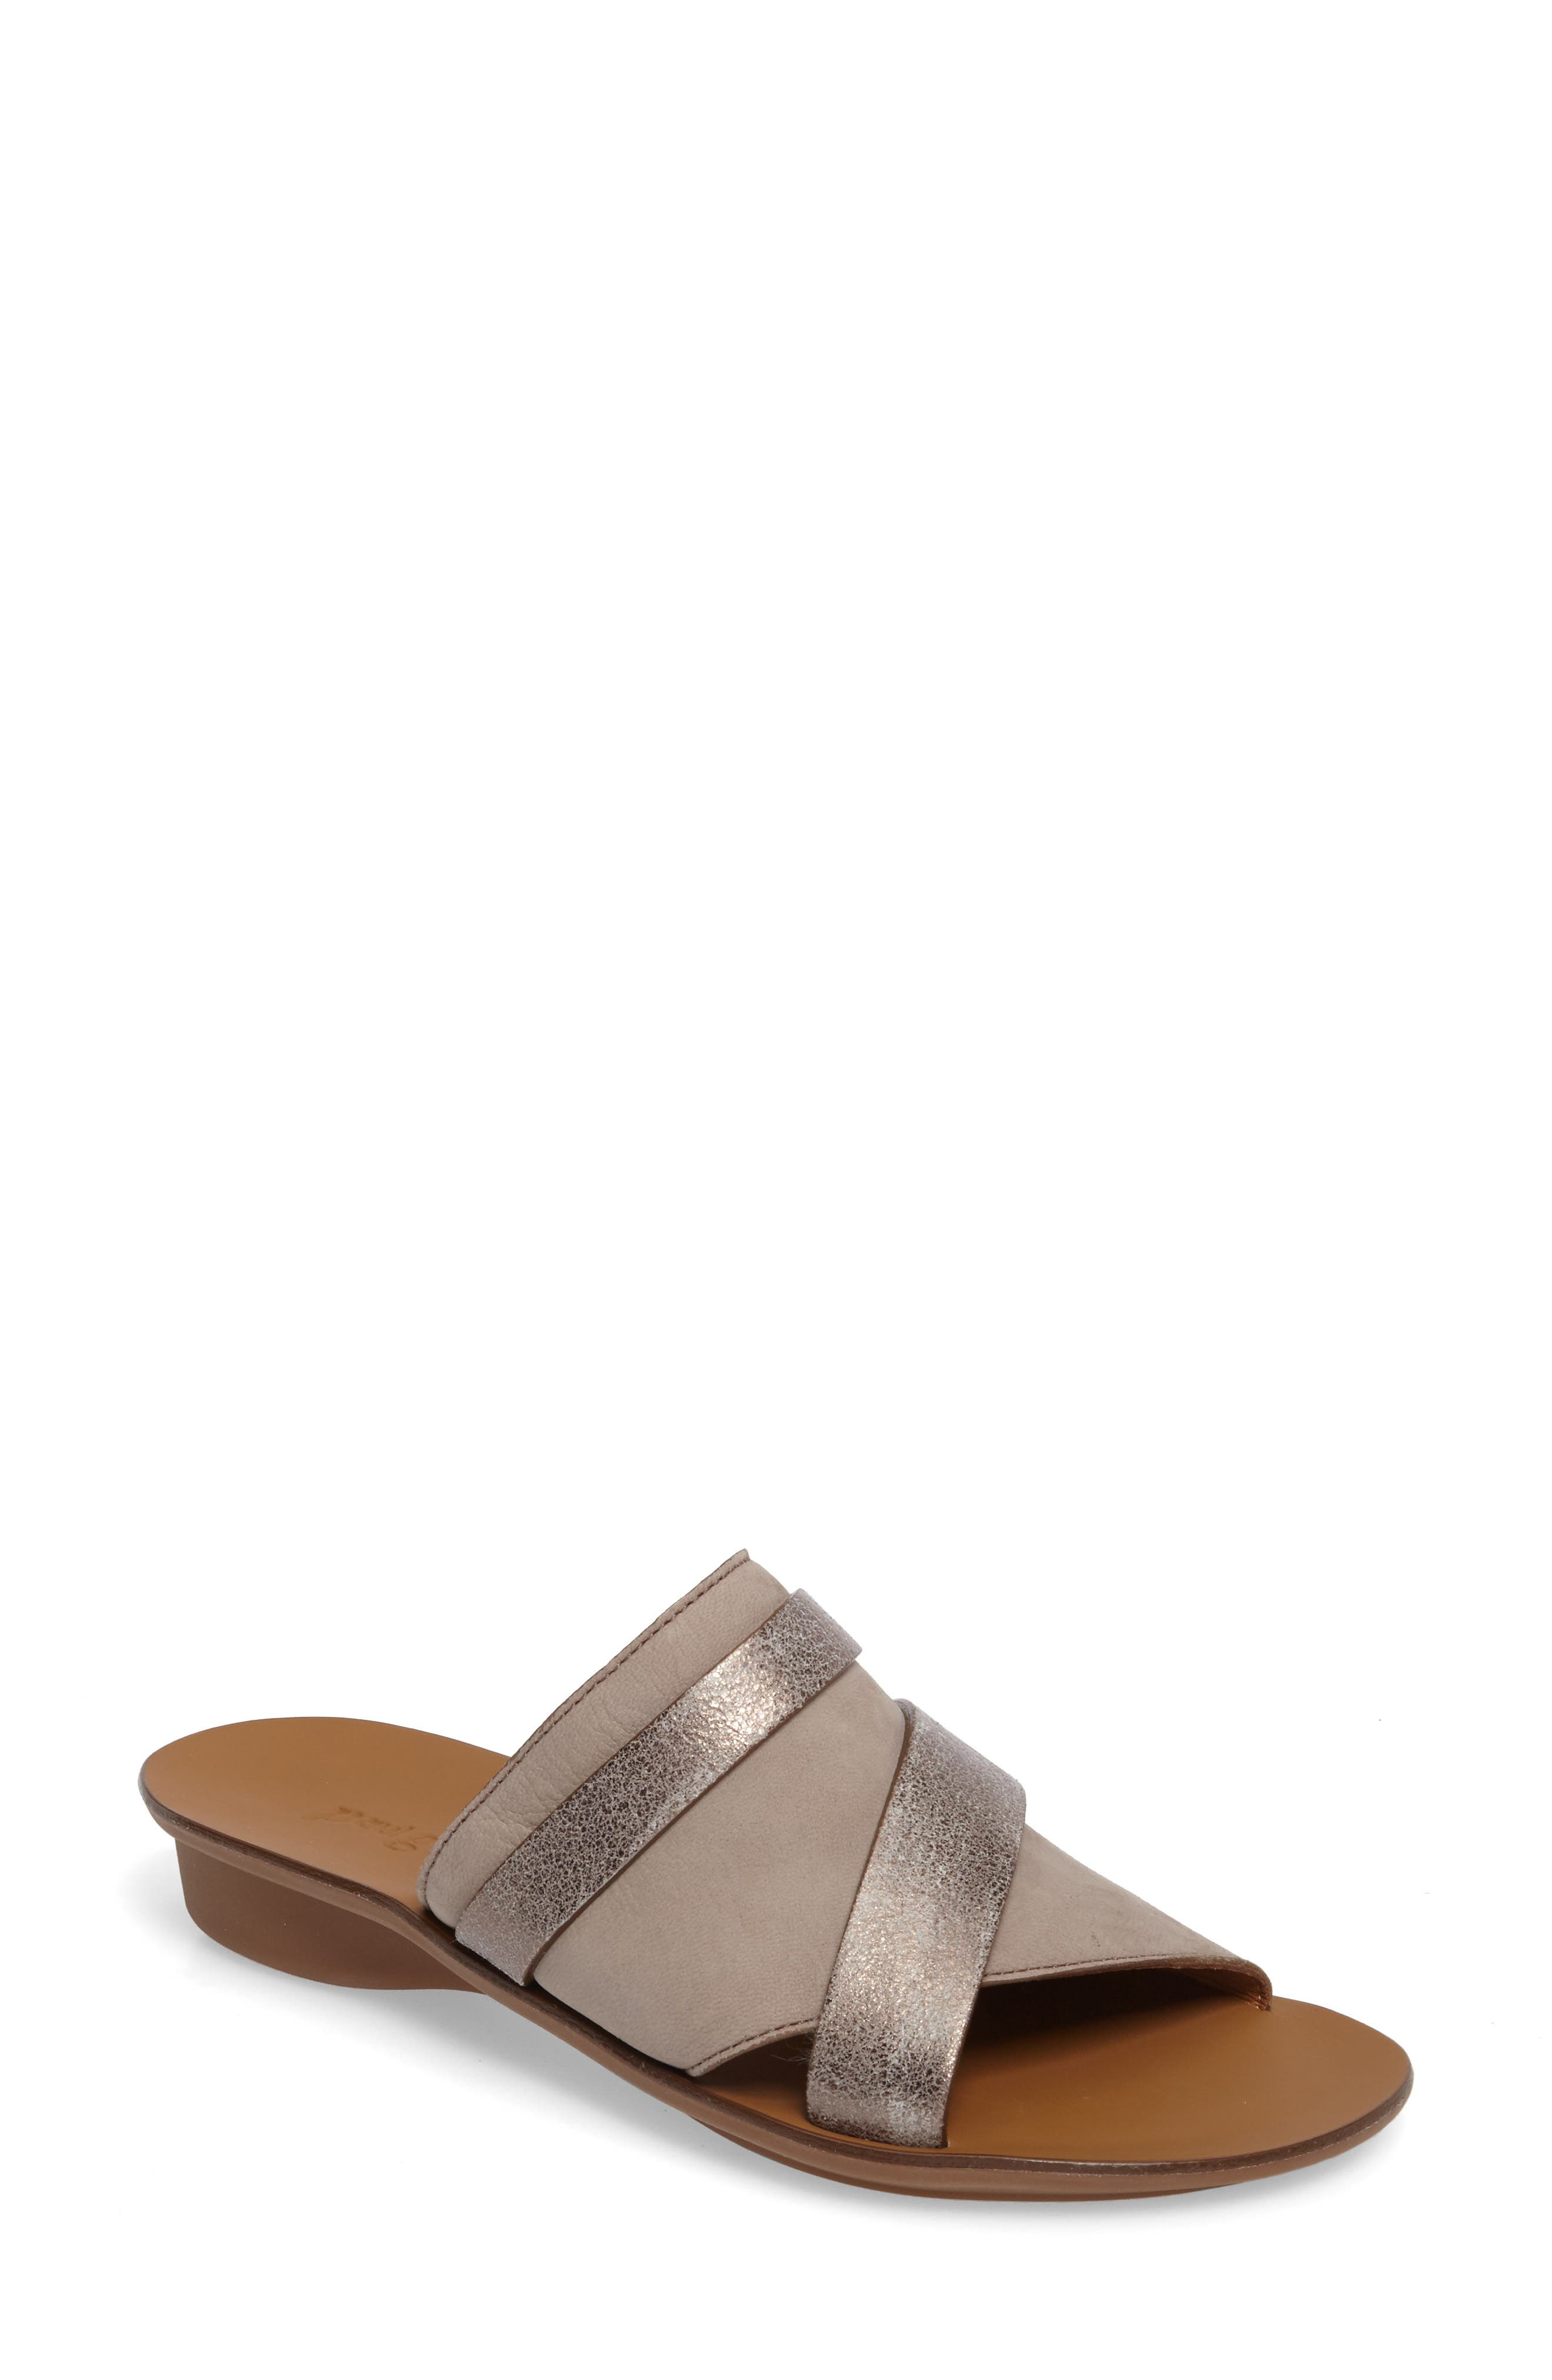 Alternate Image 1 Selected - Paul Green 'Bayside' Leather Sandal (Women)